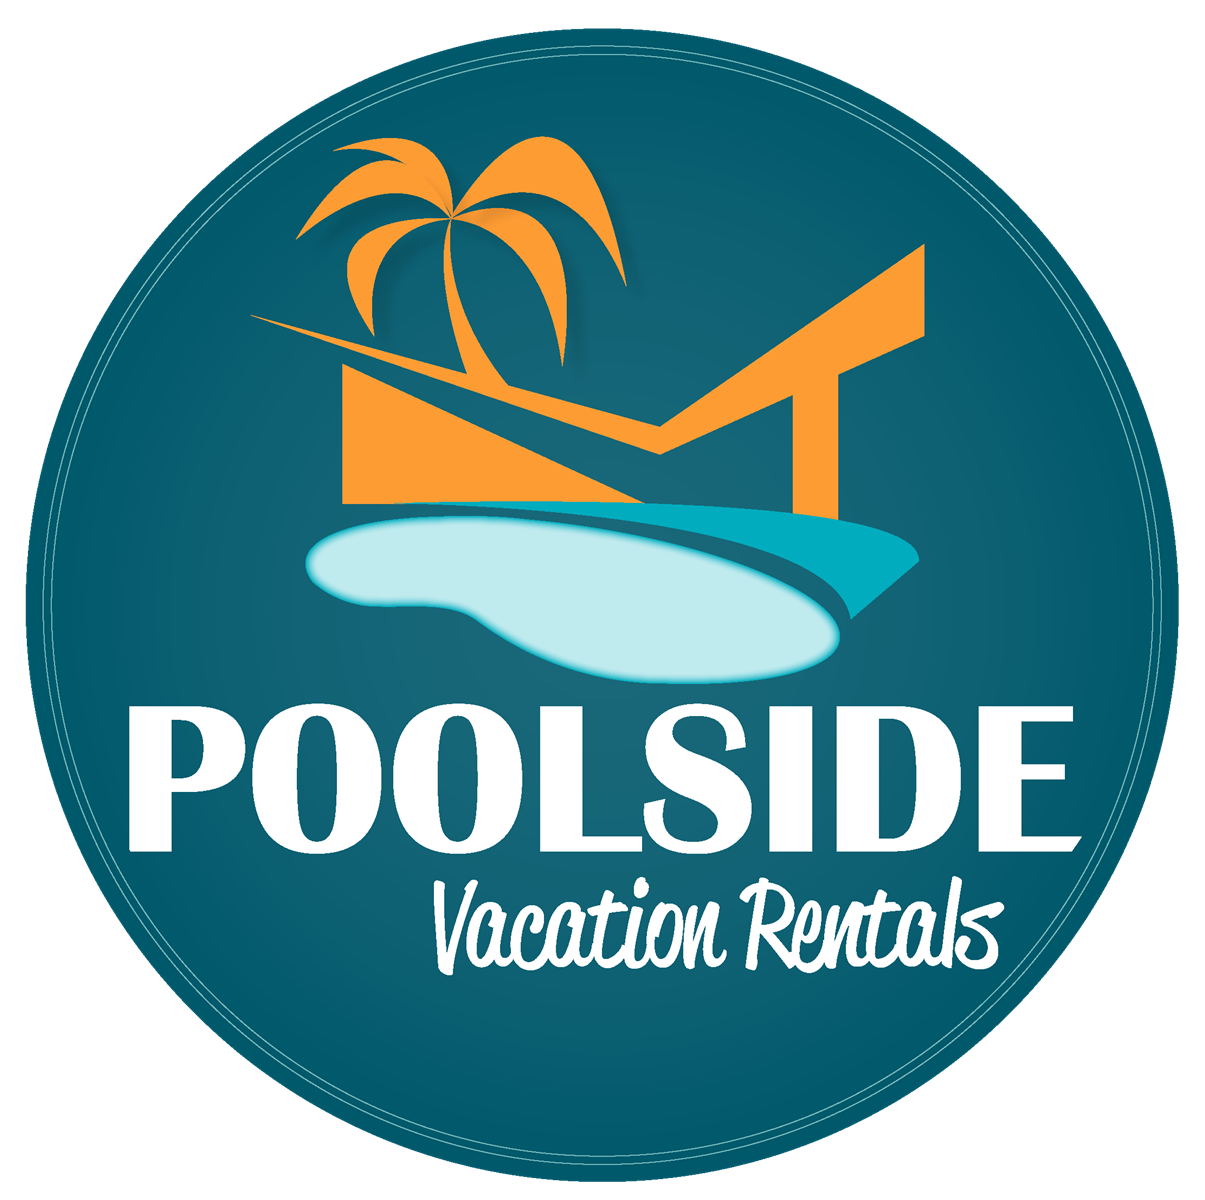 poolside vacation rentals